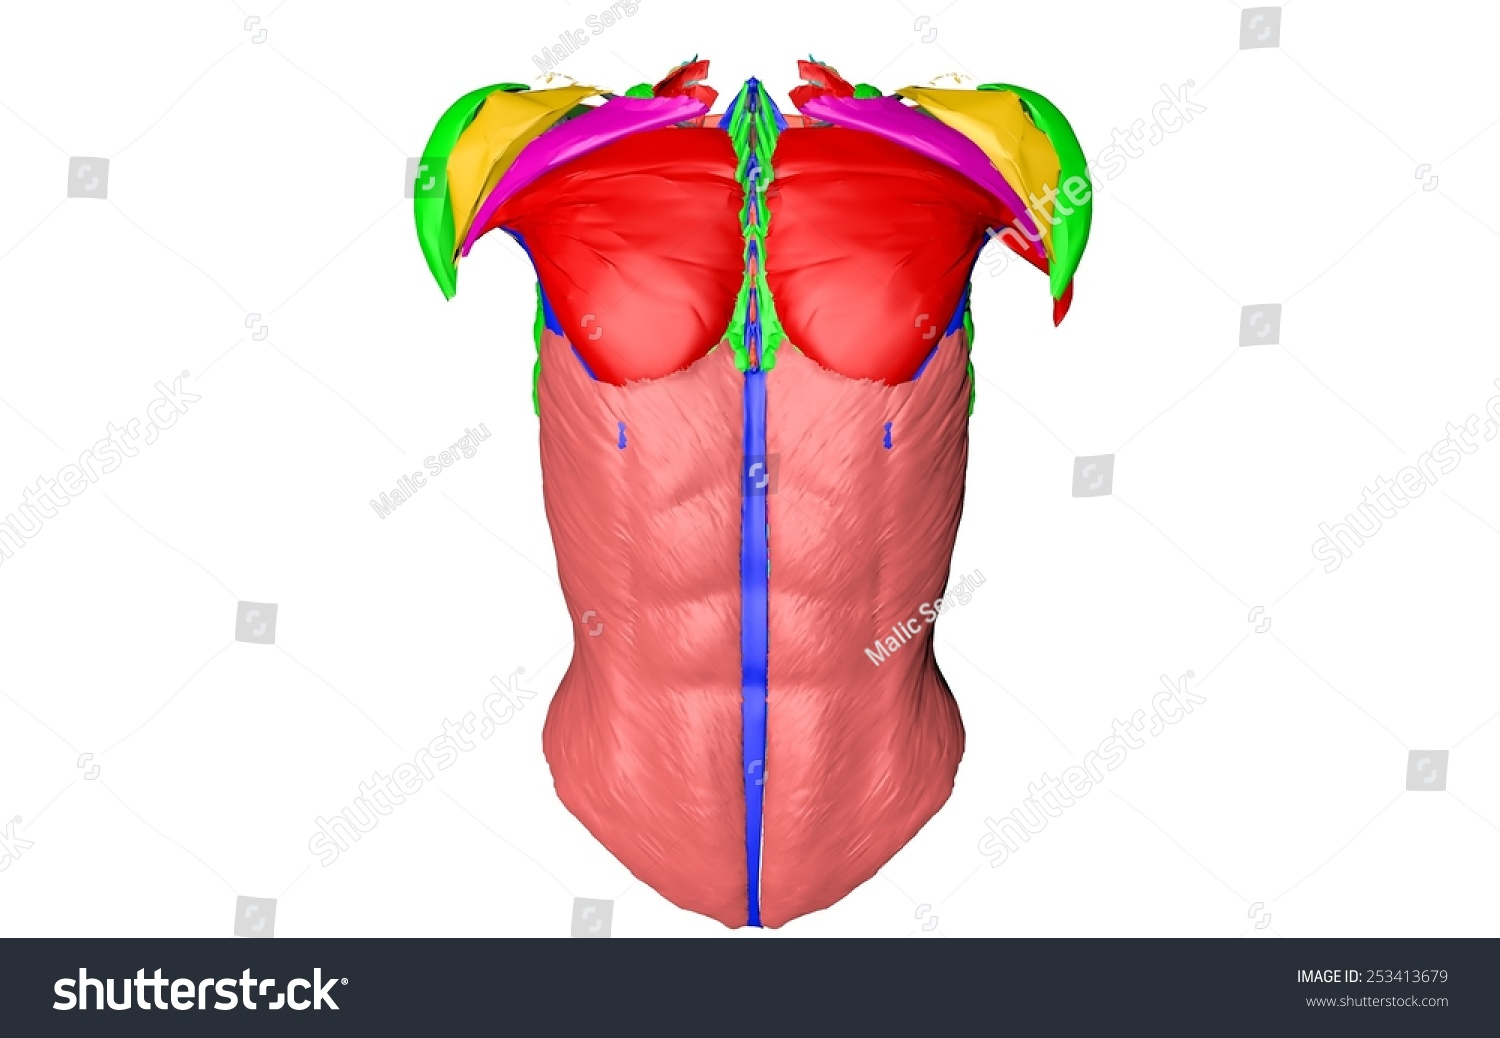 Body Muscles Chest Muscles Belly Muscles Stock Illustration